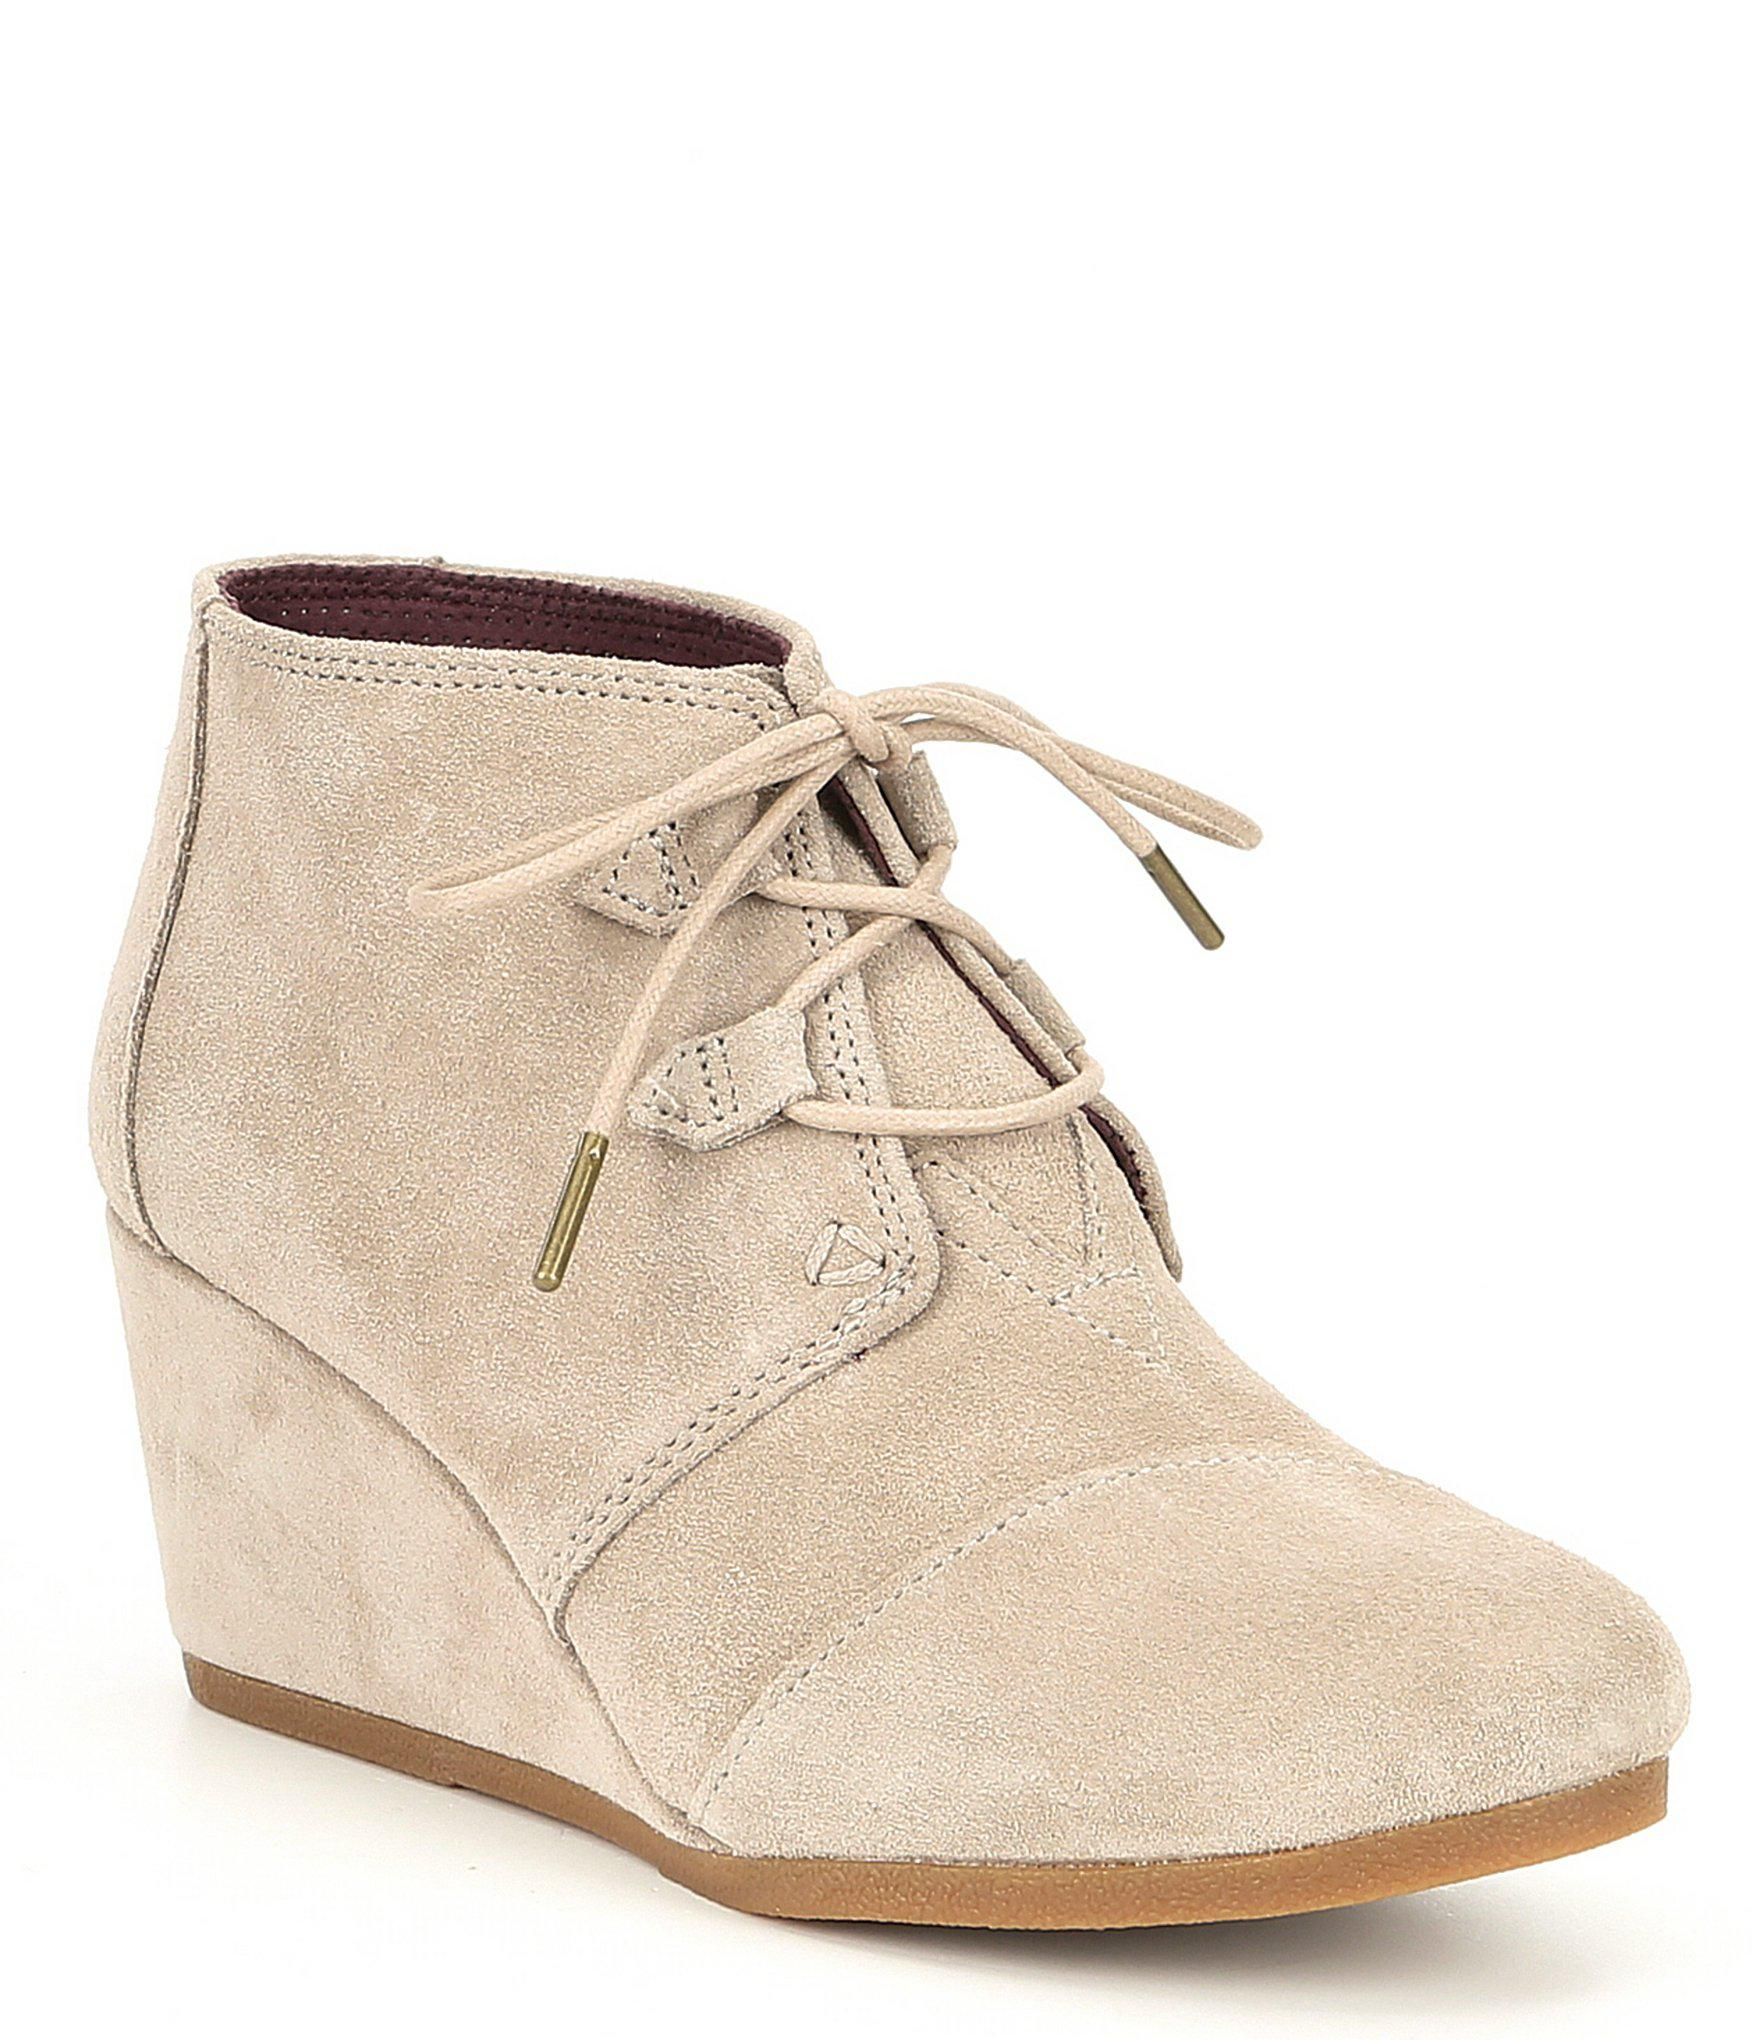 19bd416683d Lyst - TOMS Kala Suede Lace Up Wedge Booties in Natural